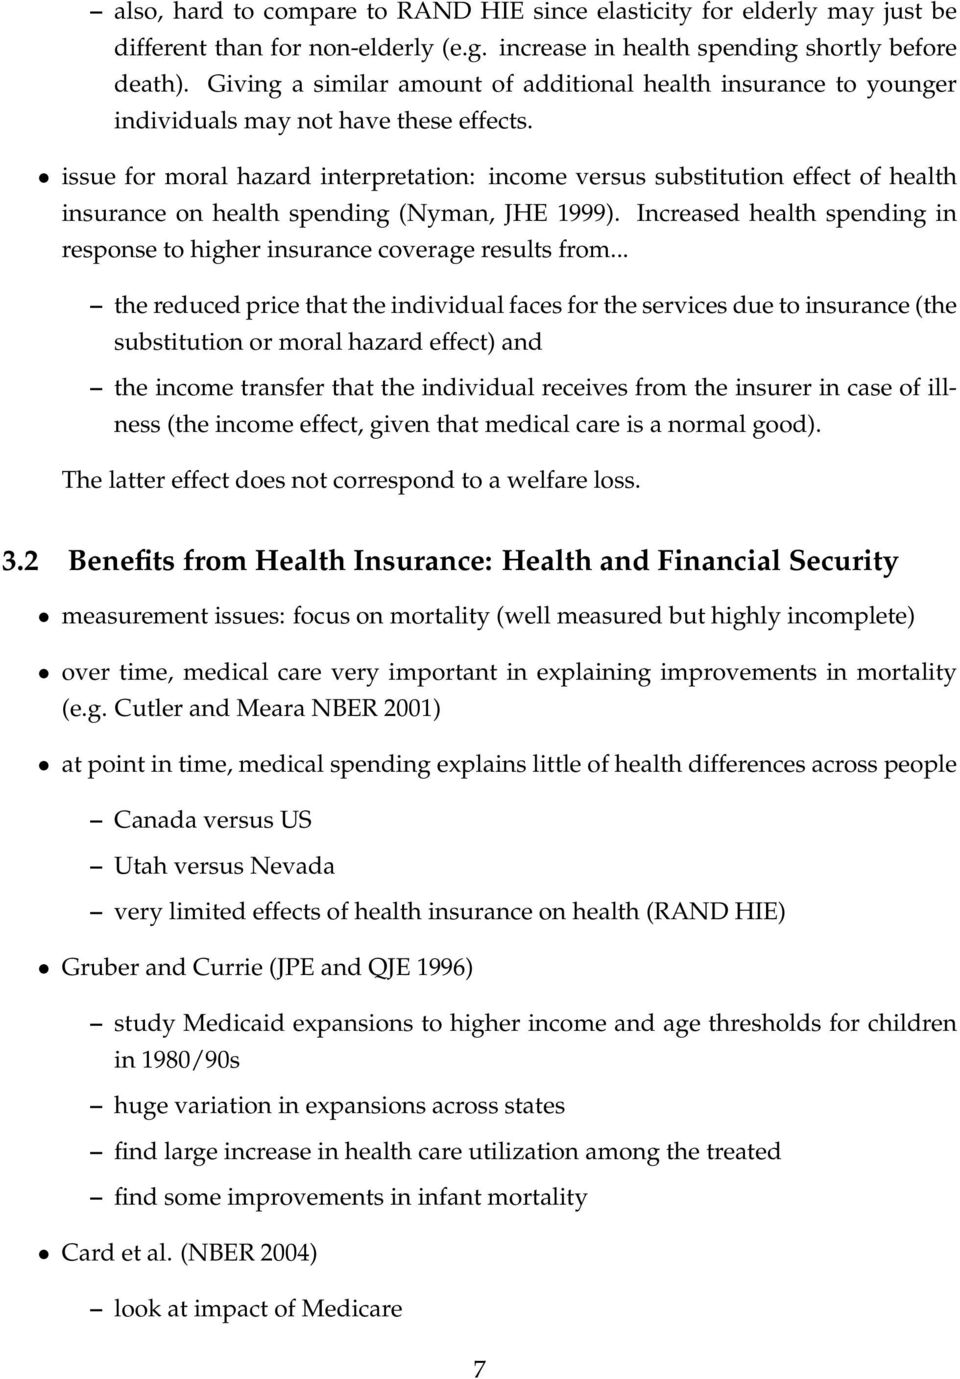 issue for moral hazard interpretation: income versus substitution effect of health insurance on health spending (Nyman, JHE 1999).